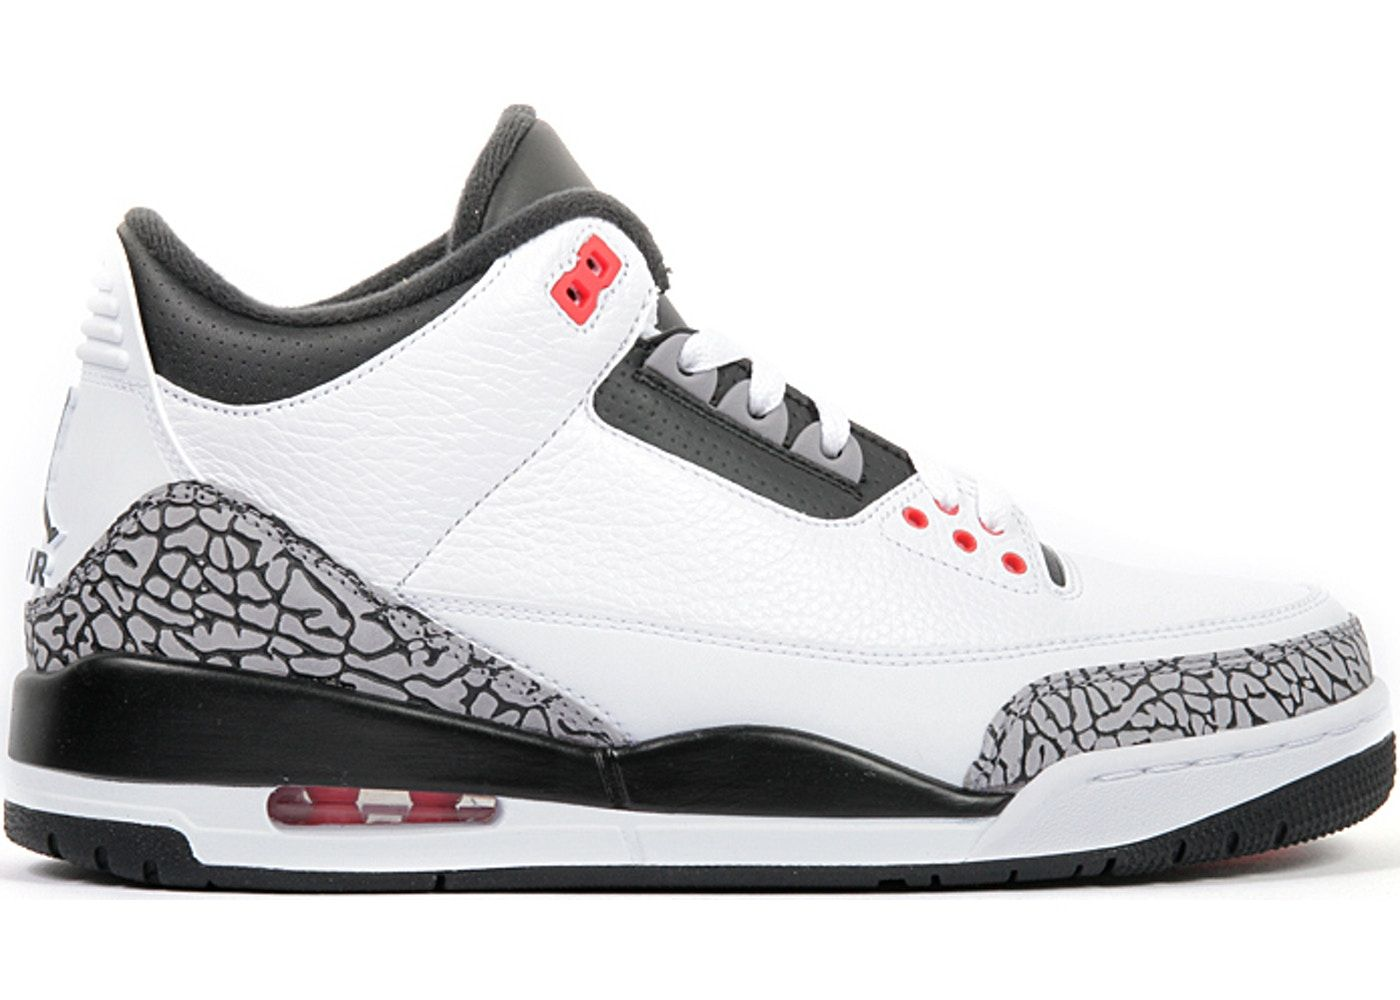 1cf832e8 Check out the Jordan 3 Retro Infrared 23 available on StockX ...